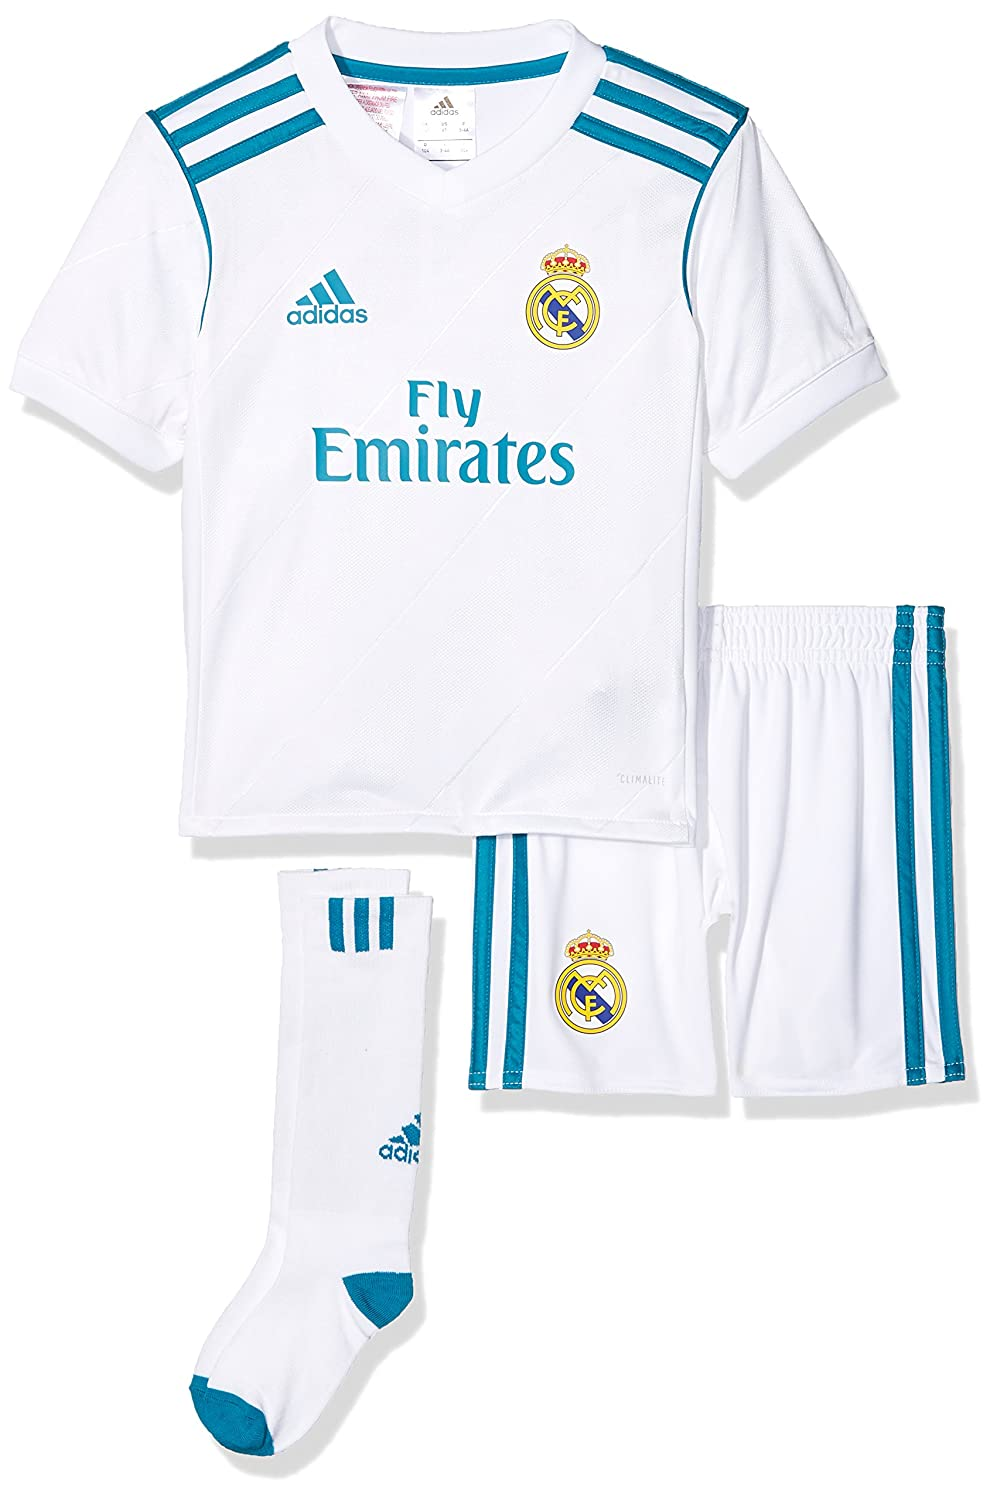 6bd1b7cf4 Real Madrid 17 18 Mini Kids Home Replica Football Kit - White ...